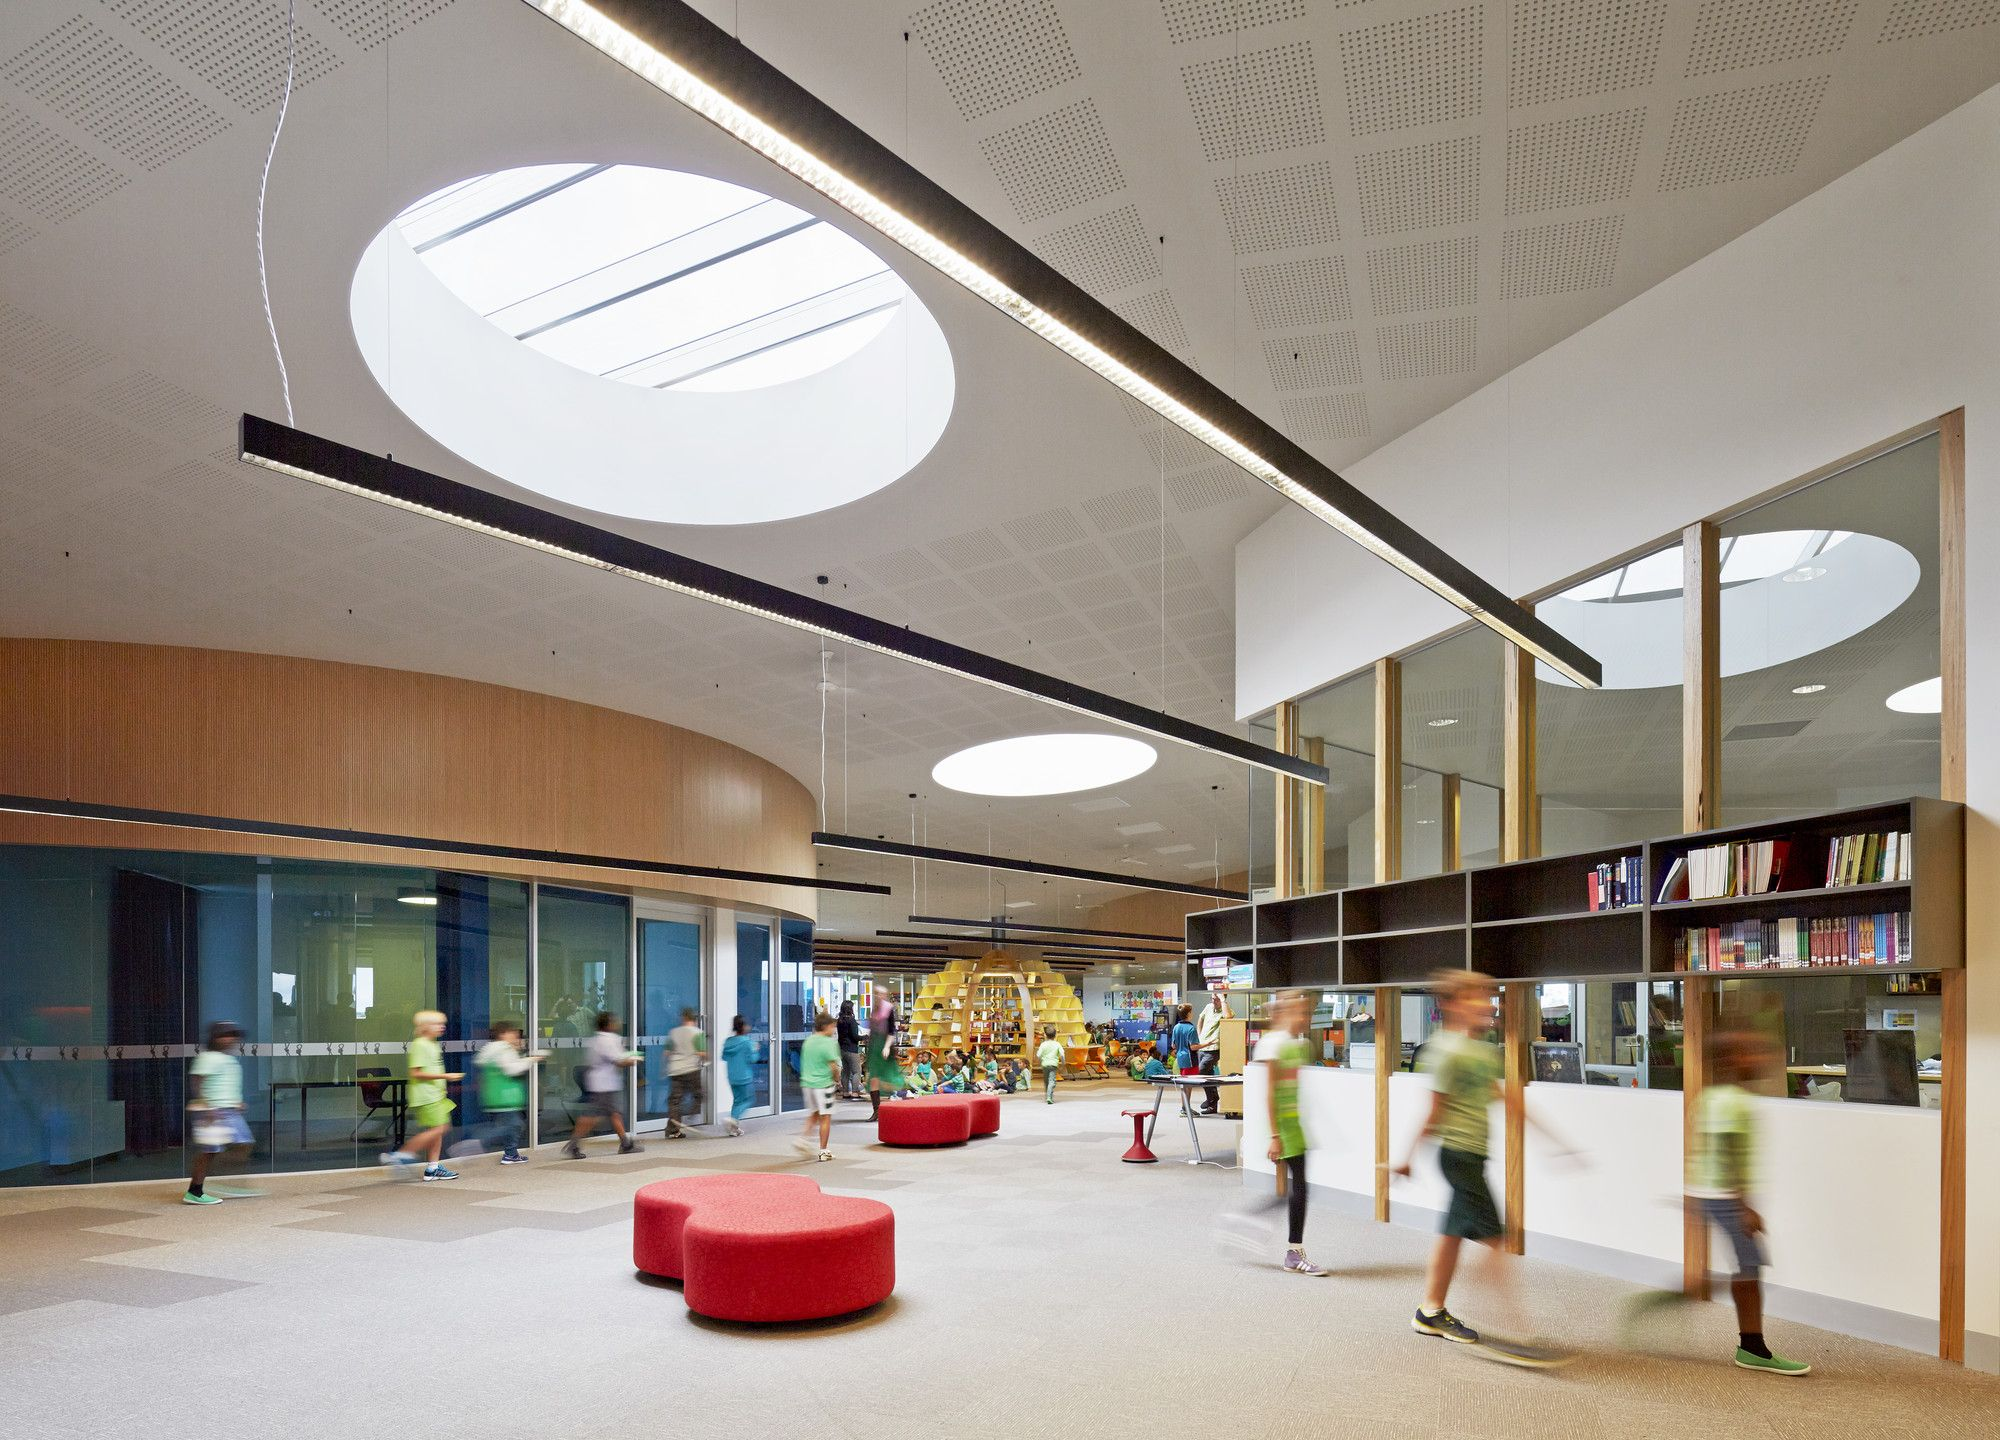 St Mary of the Cross Primary School by Baldasso Cortese Architects - Inspiration for Primary Schools by SI architects